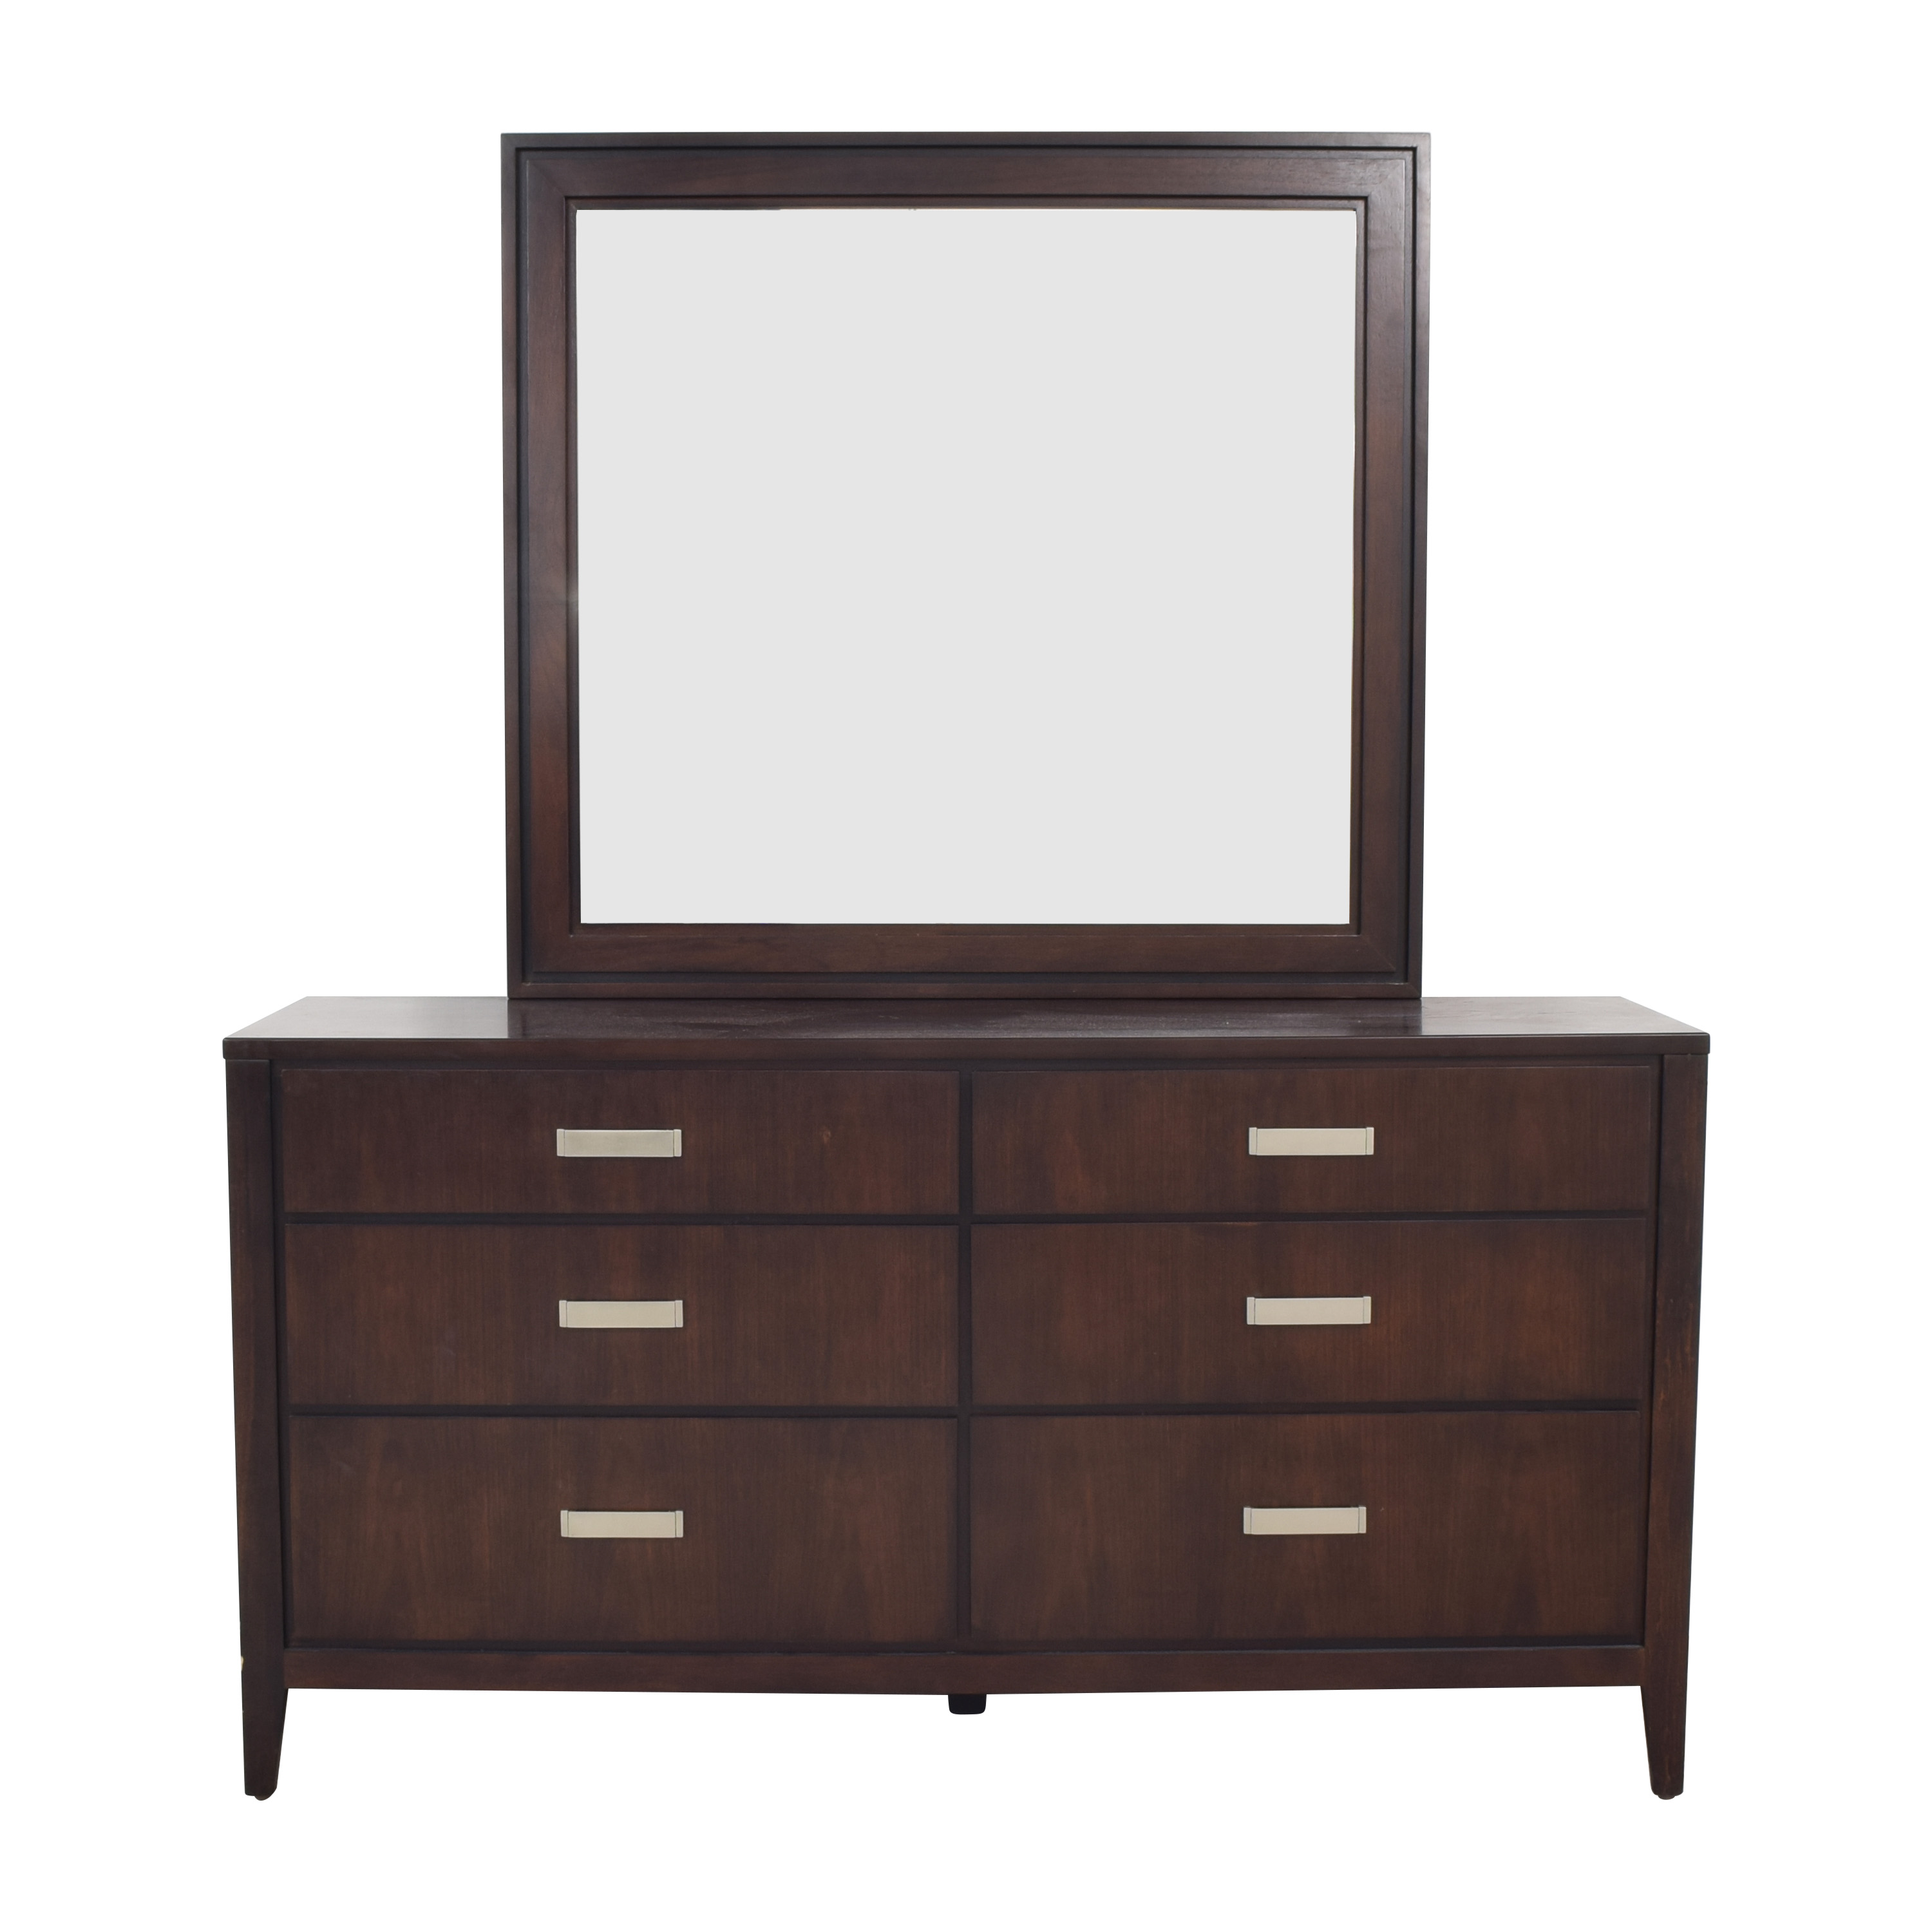 Raymour & Flanigan Raymour & Flanigan Kian Dresser with Mirror ma